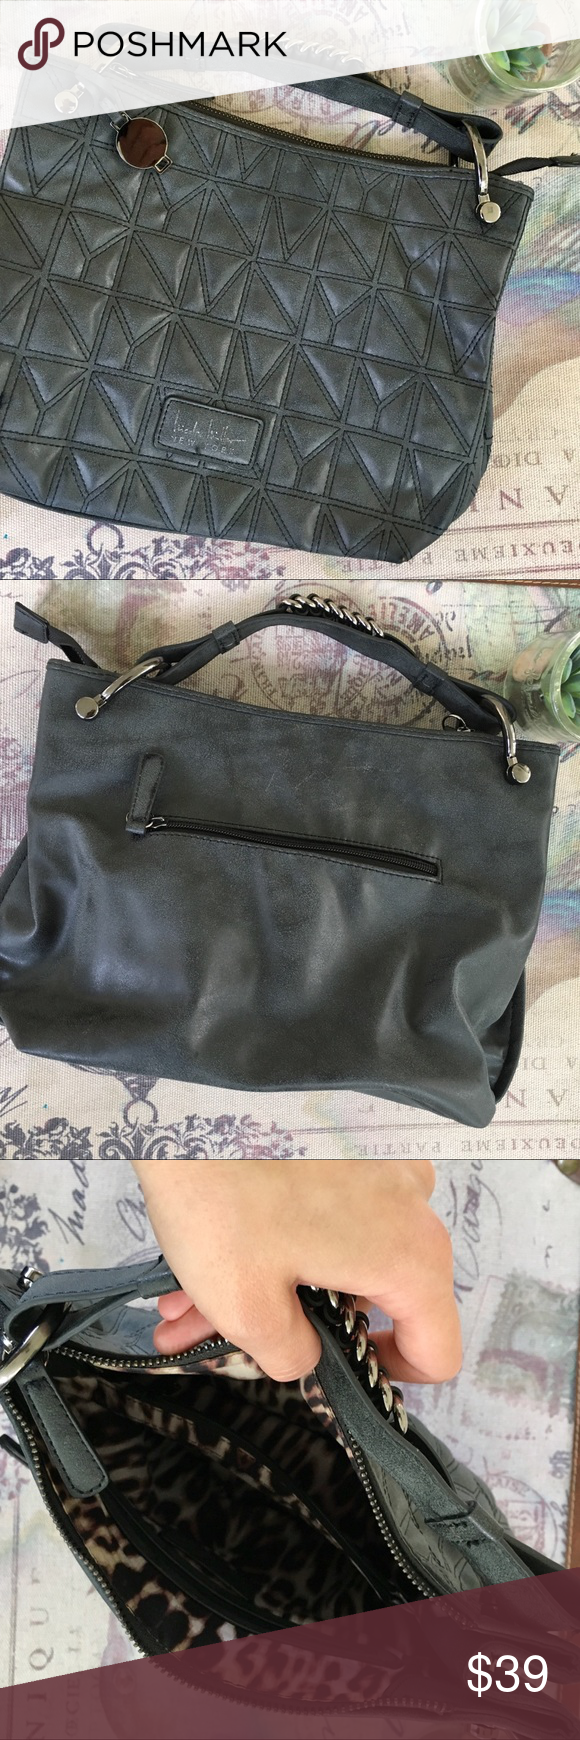 4d925107ac53 Quilted Nicole Miller Purse in Charcoal In good preloved condition Quilted  charcoal faux leather material with silver hardware Shoulder strap has been  ...